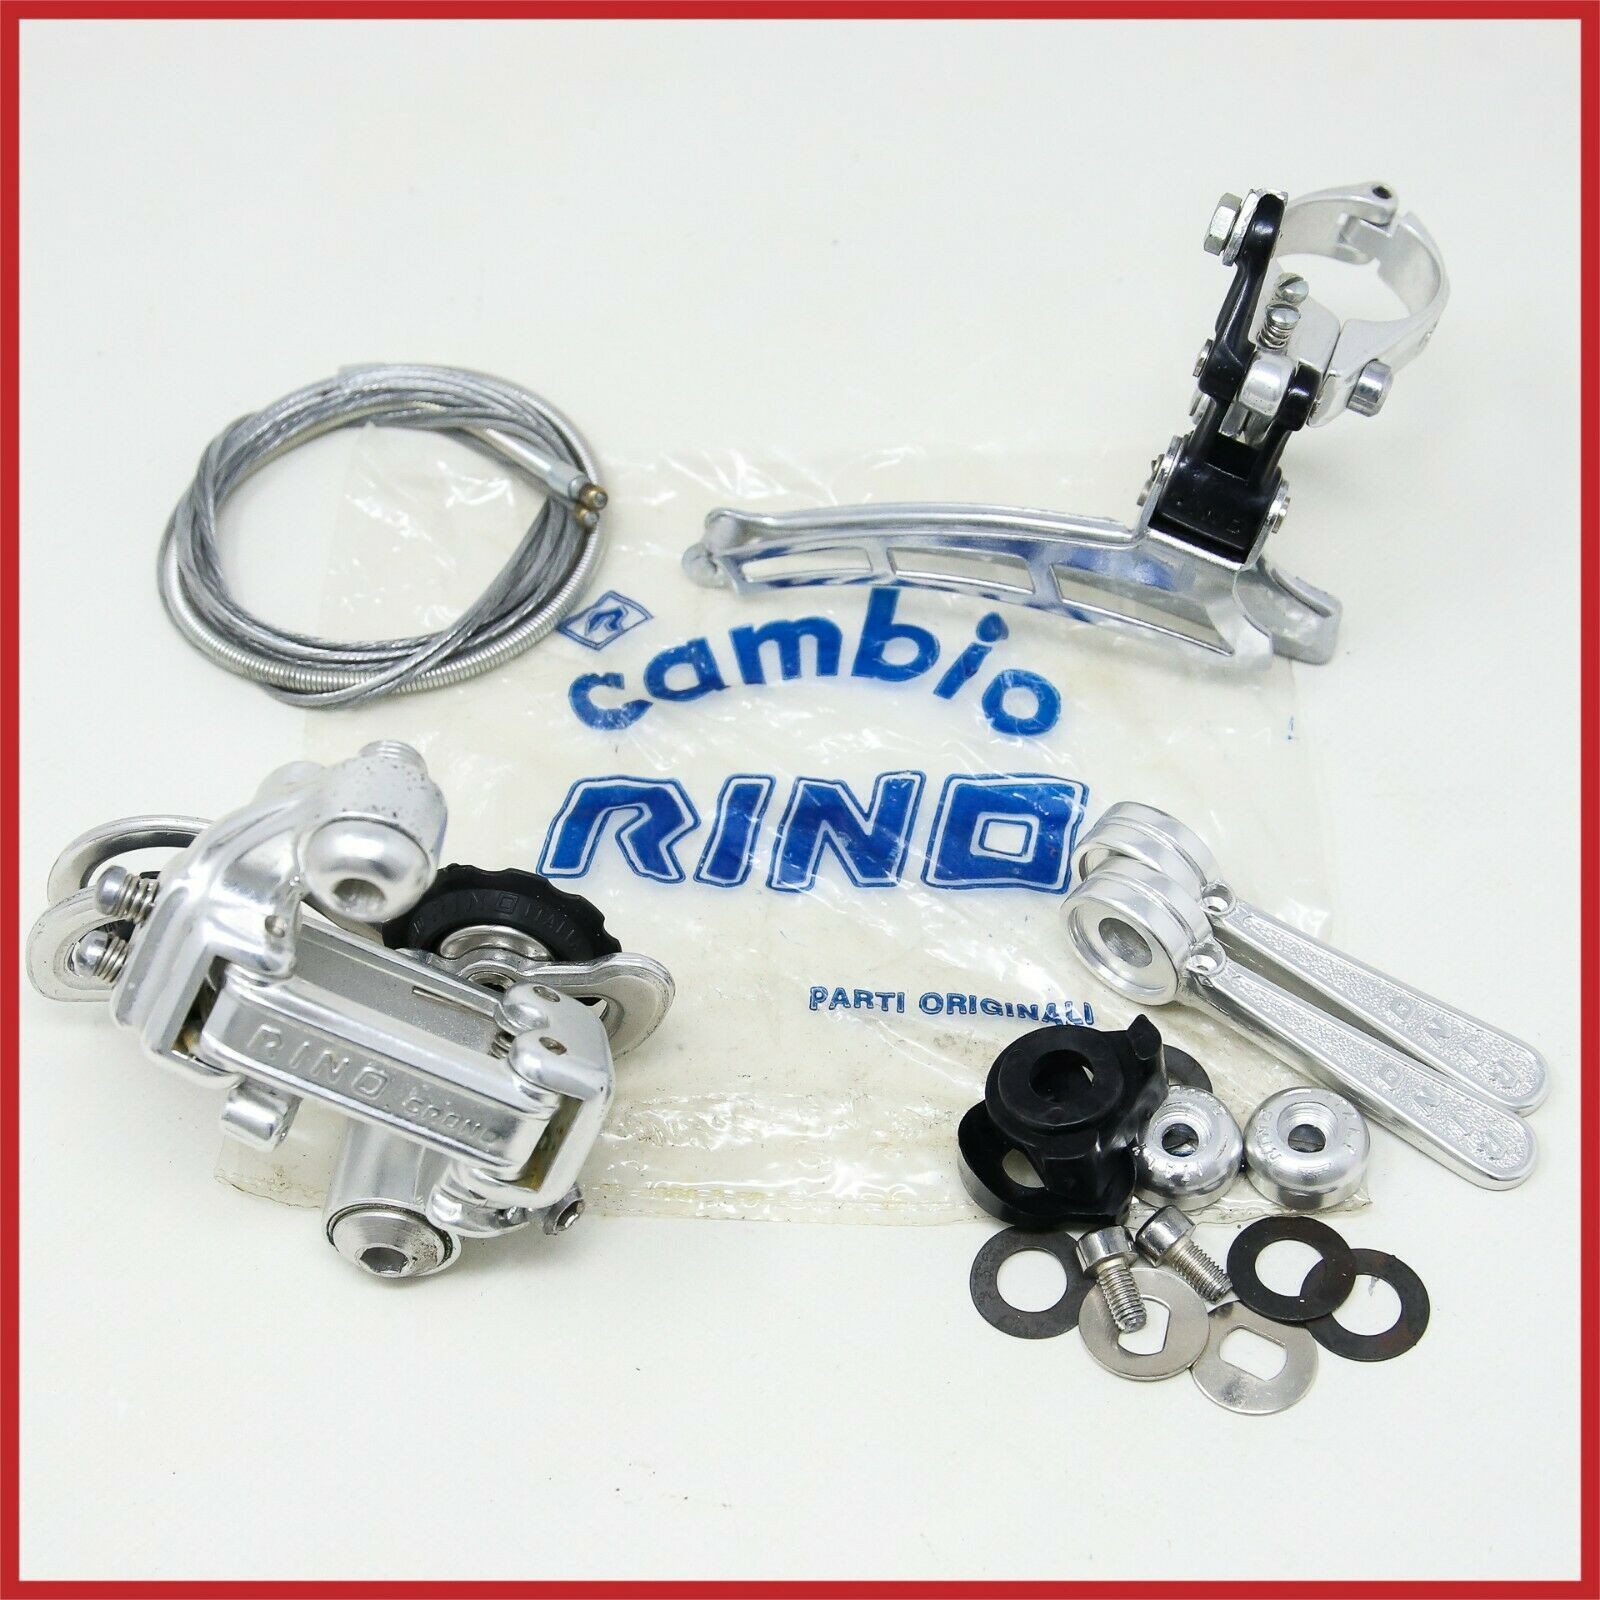 NOS CAMBIO RINO CRONO FRONT REAR DERAILLEUR MECH SHIFTERS DOWNTUBE VINTAGE 80s